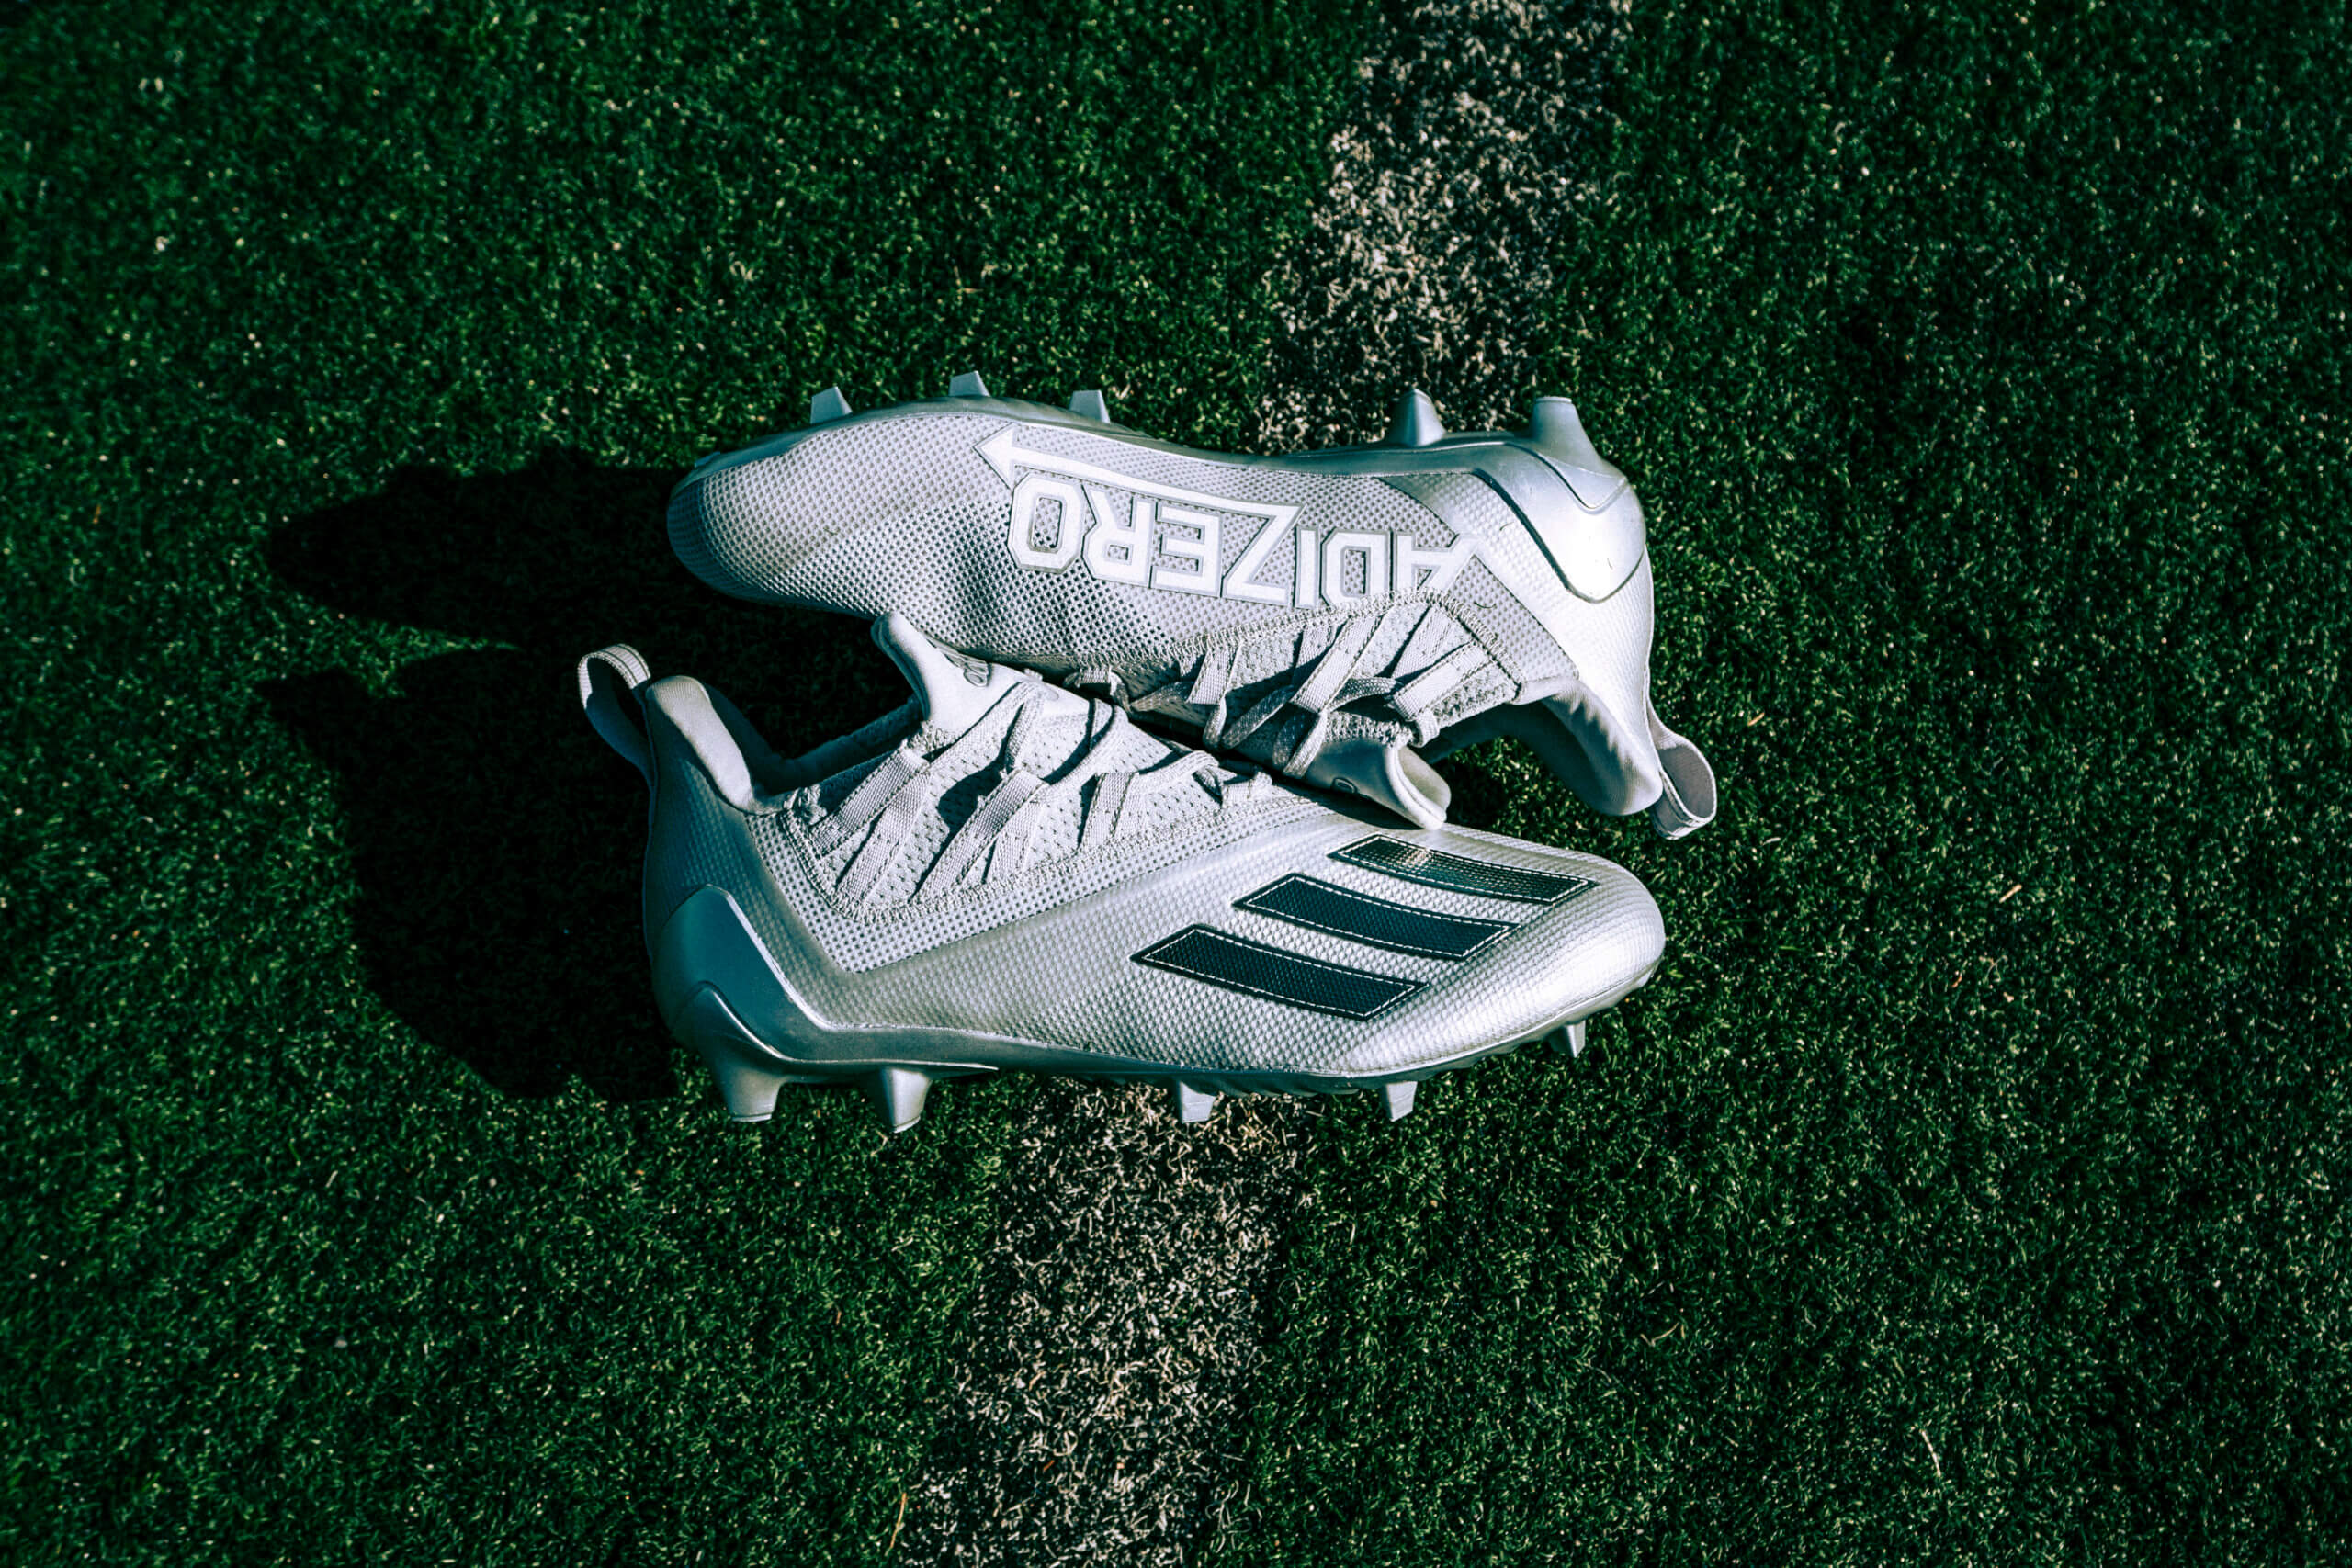 Silver cleats facing each other